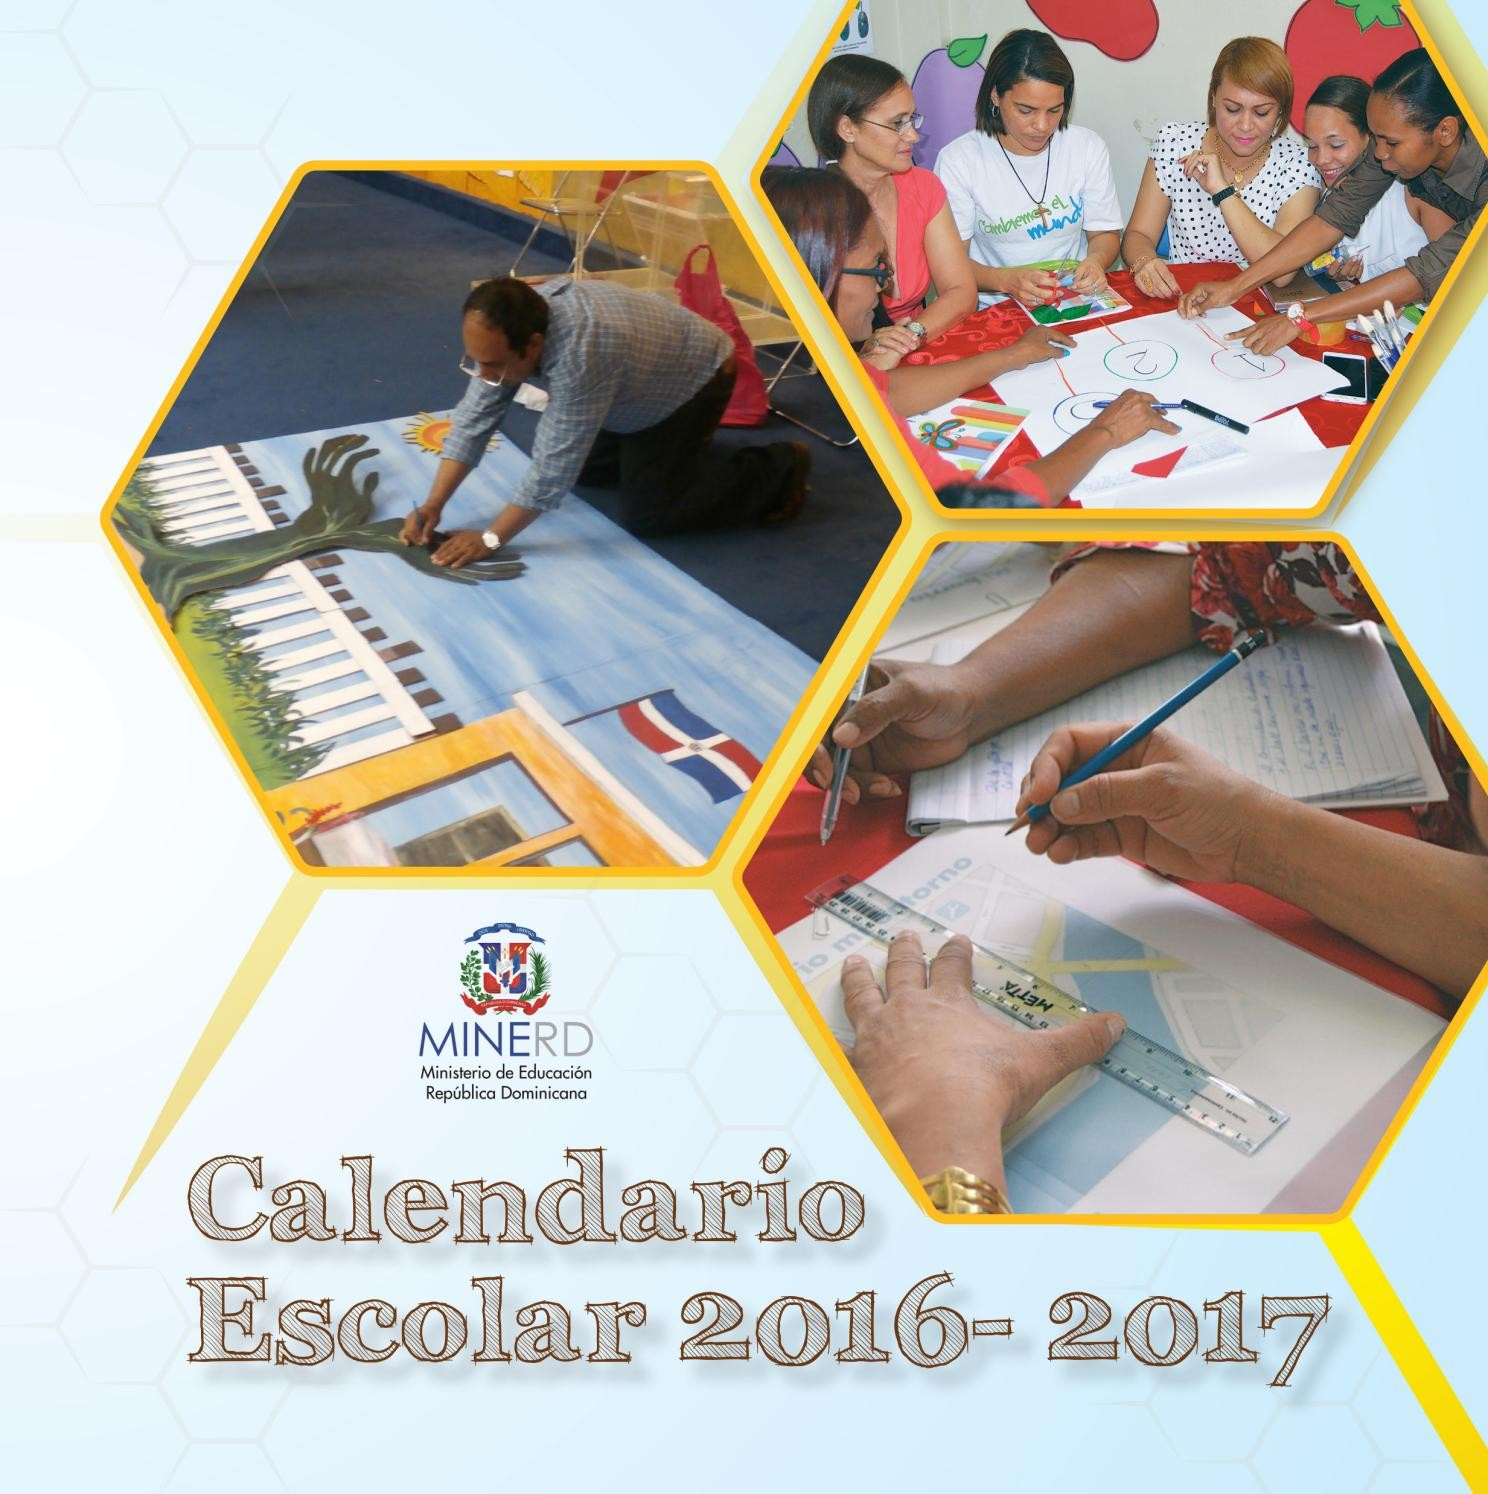 Calendario Escolar 2019 Santa Cruz Más Actual Calendario Escolar 2016 2017 by Minerd Digital issuu Of Calendario Escolar 2019 Santa Cruz Actual Abi Agencia Boliviana De Informaci³n V2018